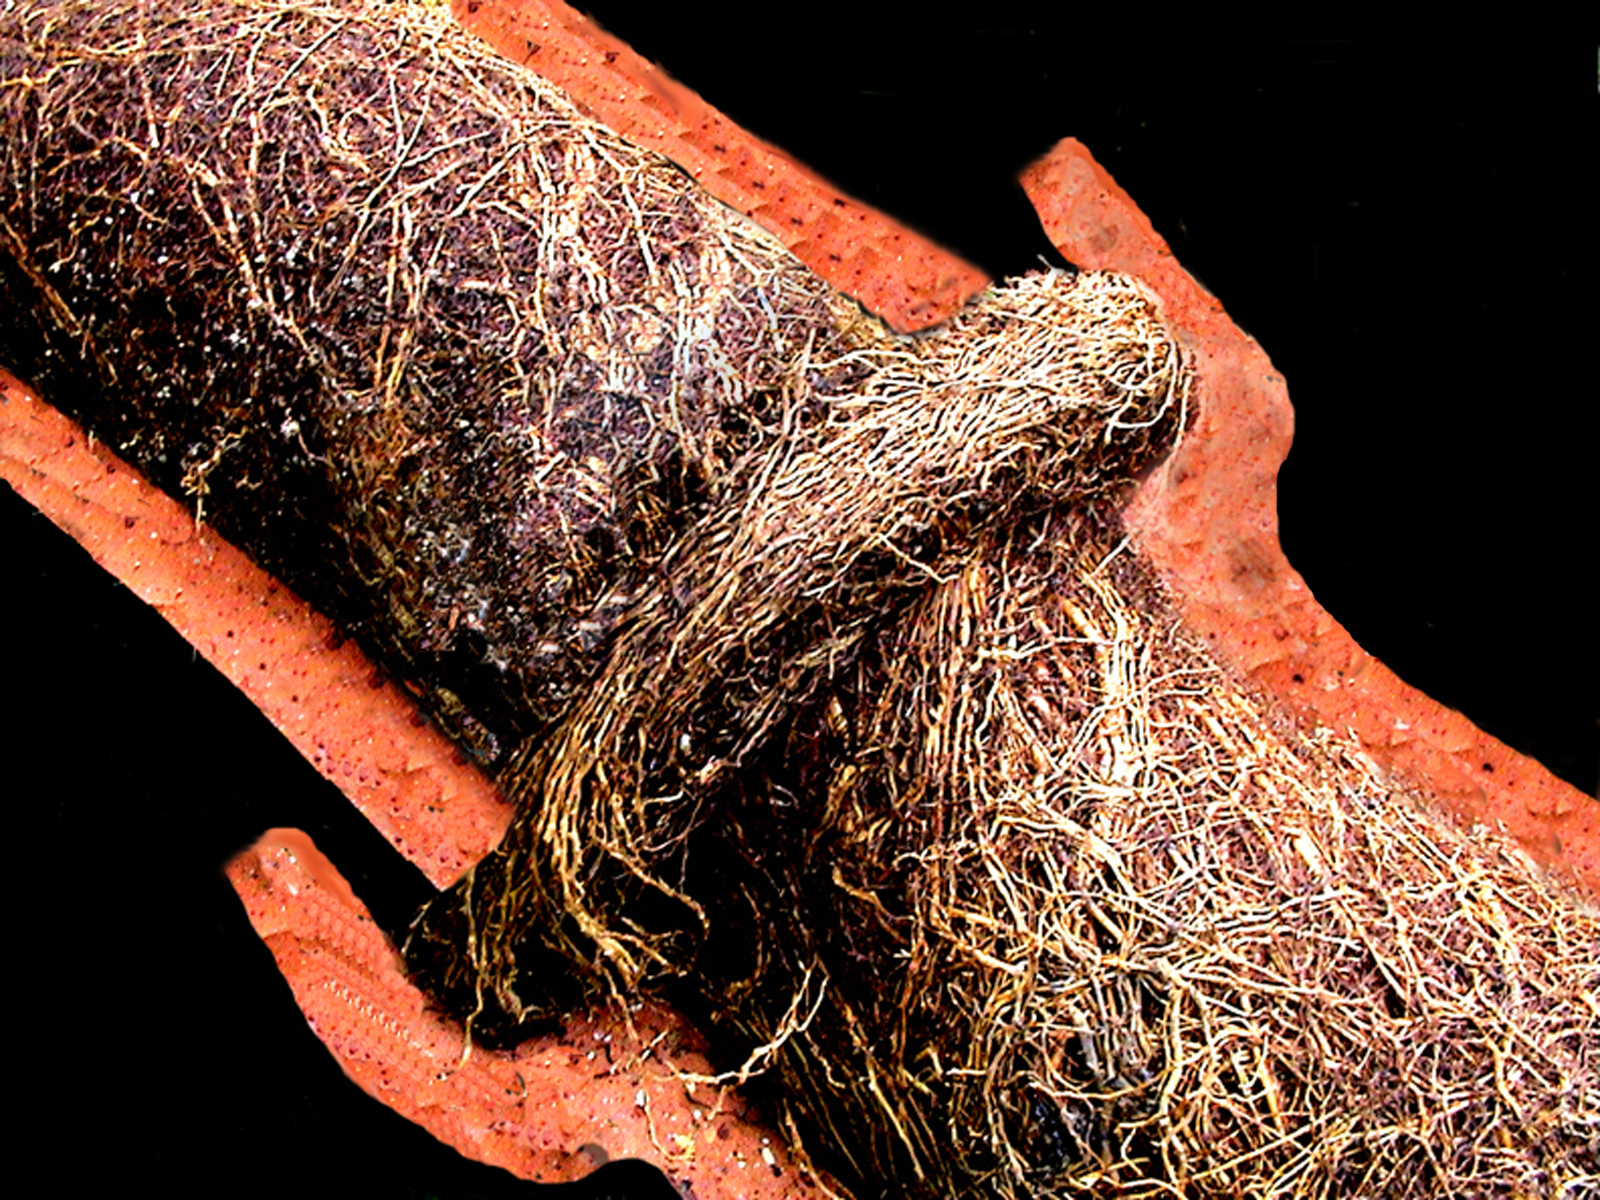 Tree roots commonly infiltrate clay sewer lines at joints